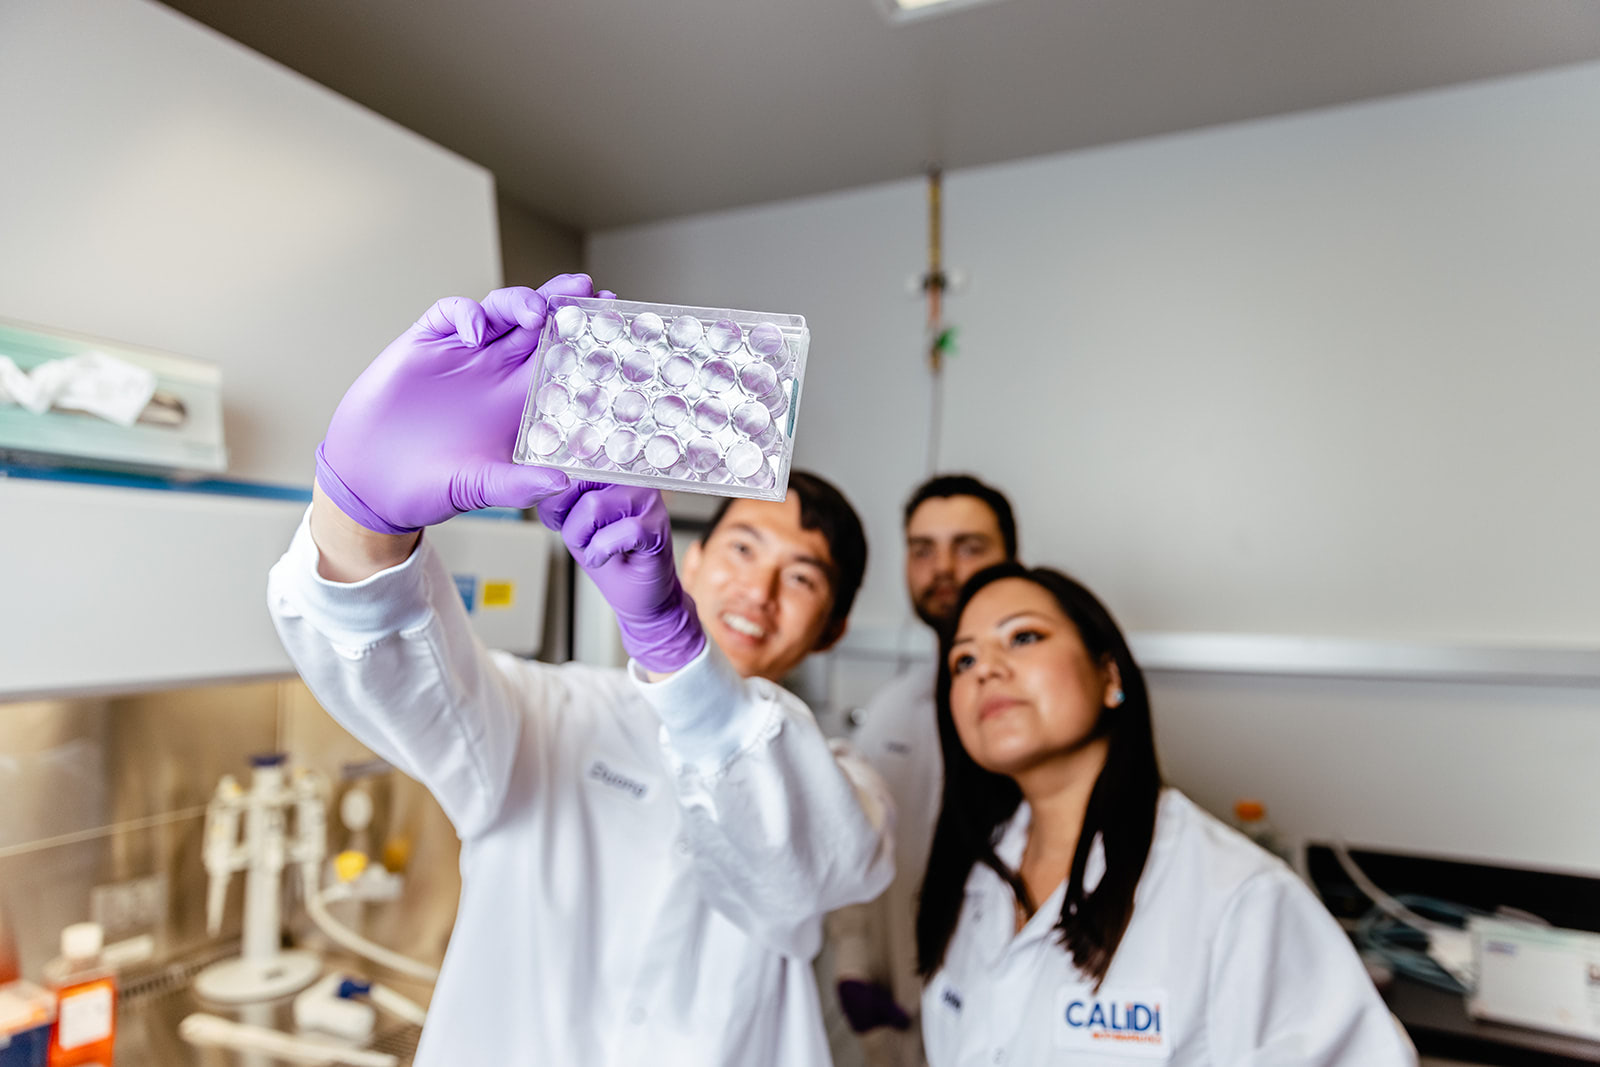 Calidi Biotherapeutics Announces European Patent Granted by EPO: Combination Immunotherapy Approach for Treatment of Cancer